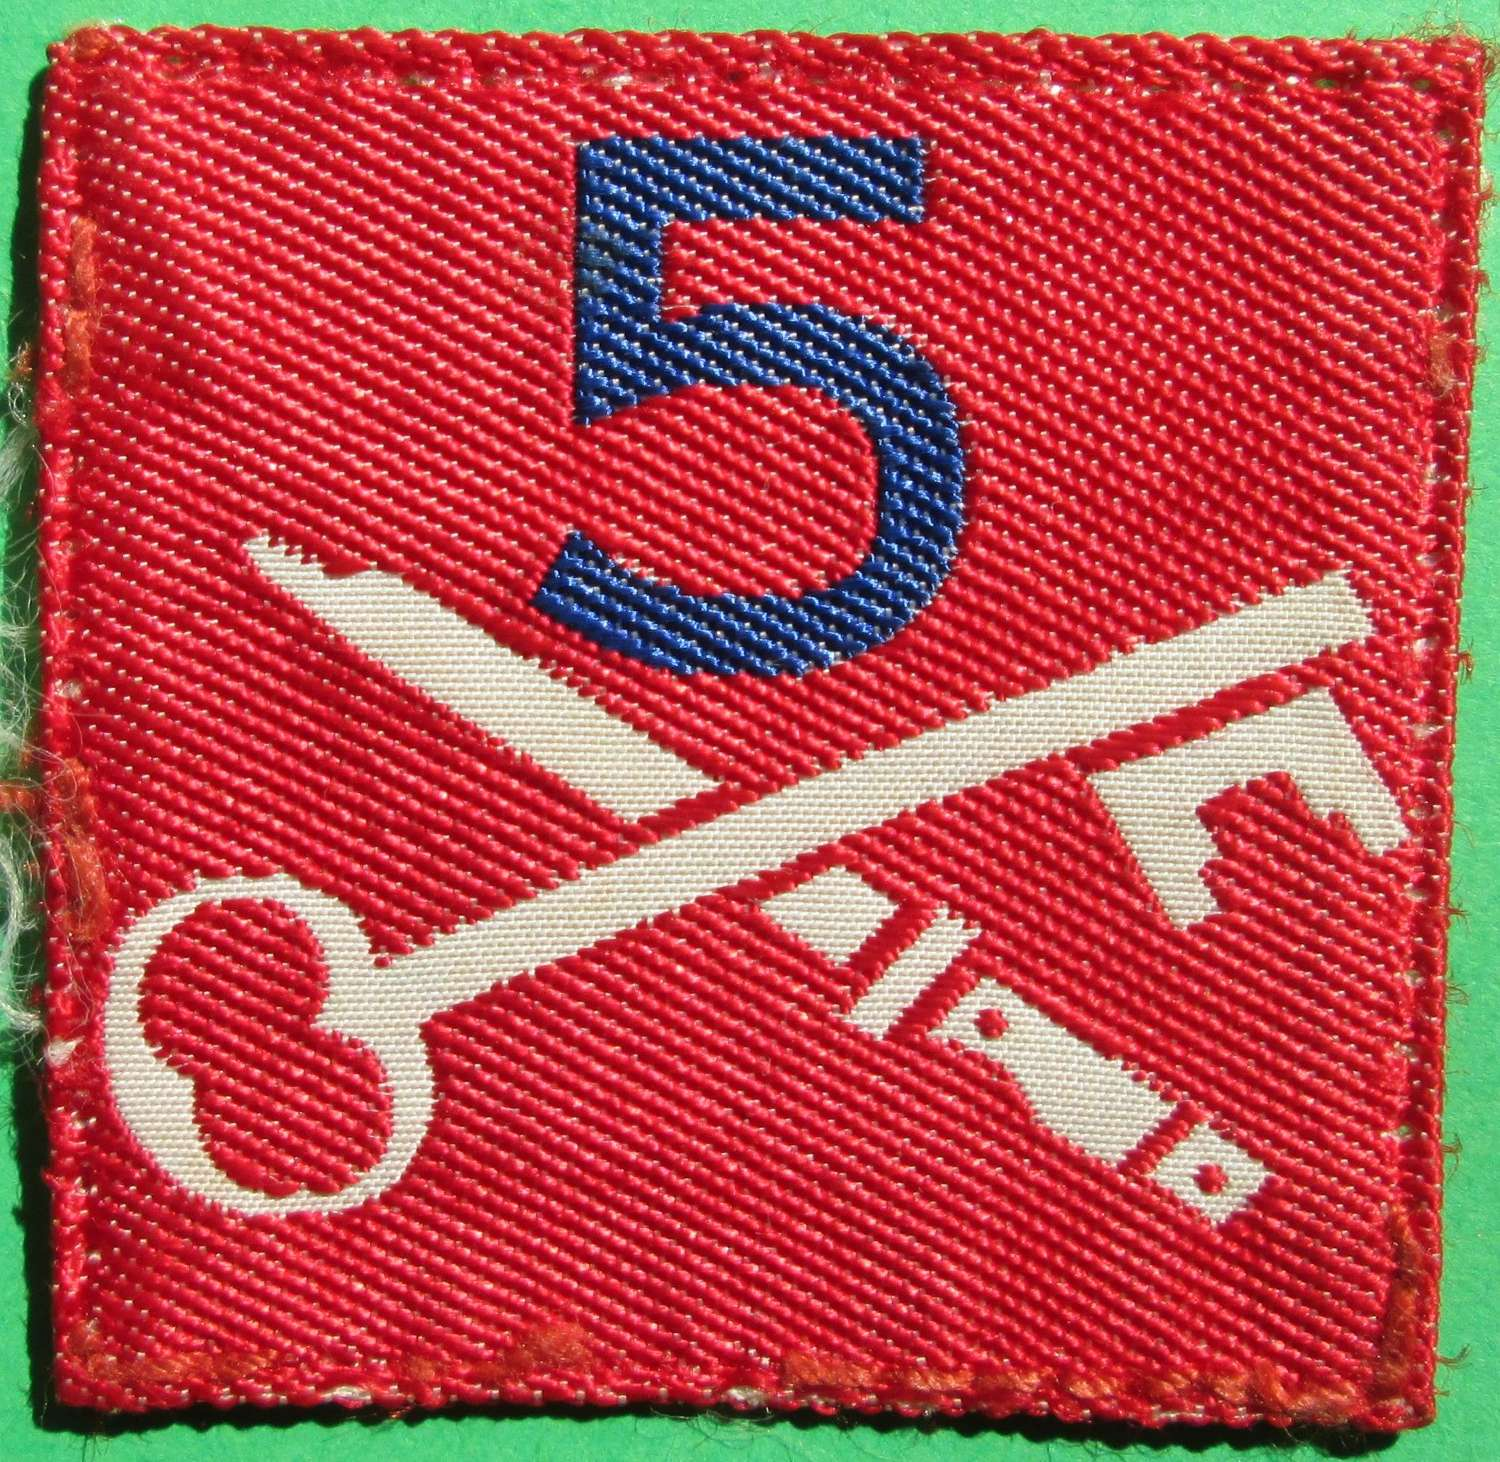 A 5TH INFANTRY BRIGADE 2ND PATTERN FORMATION SIGN